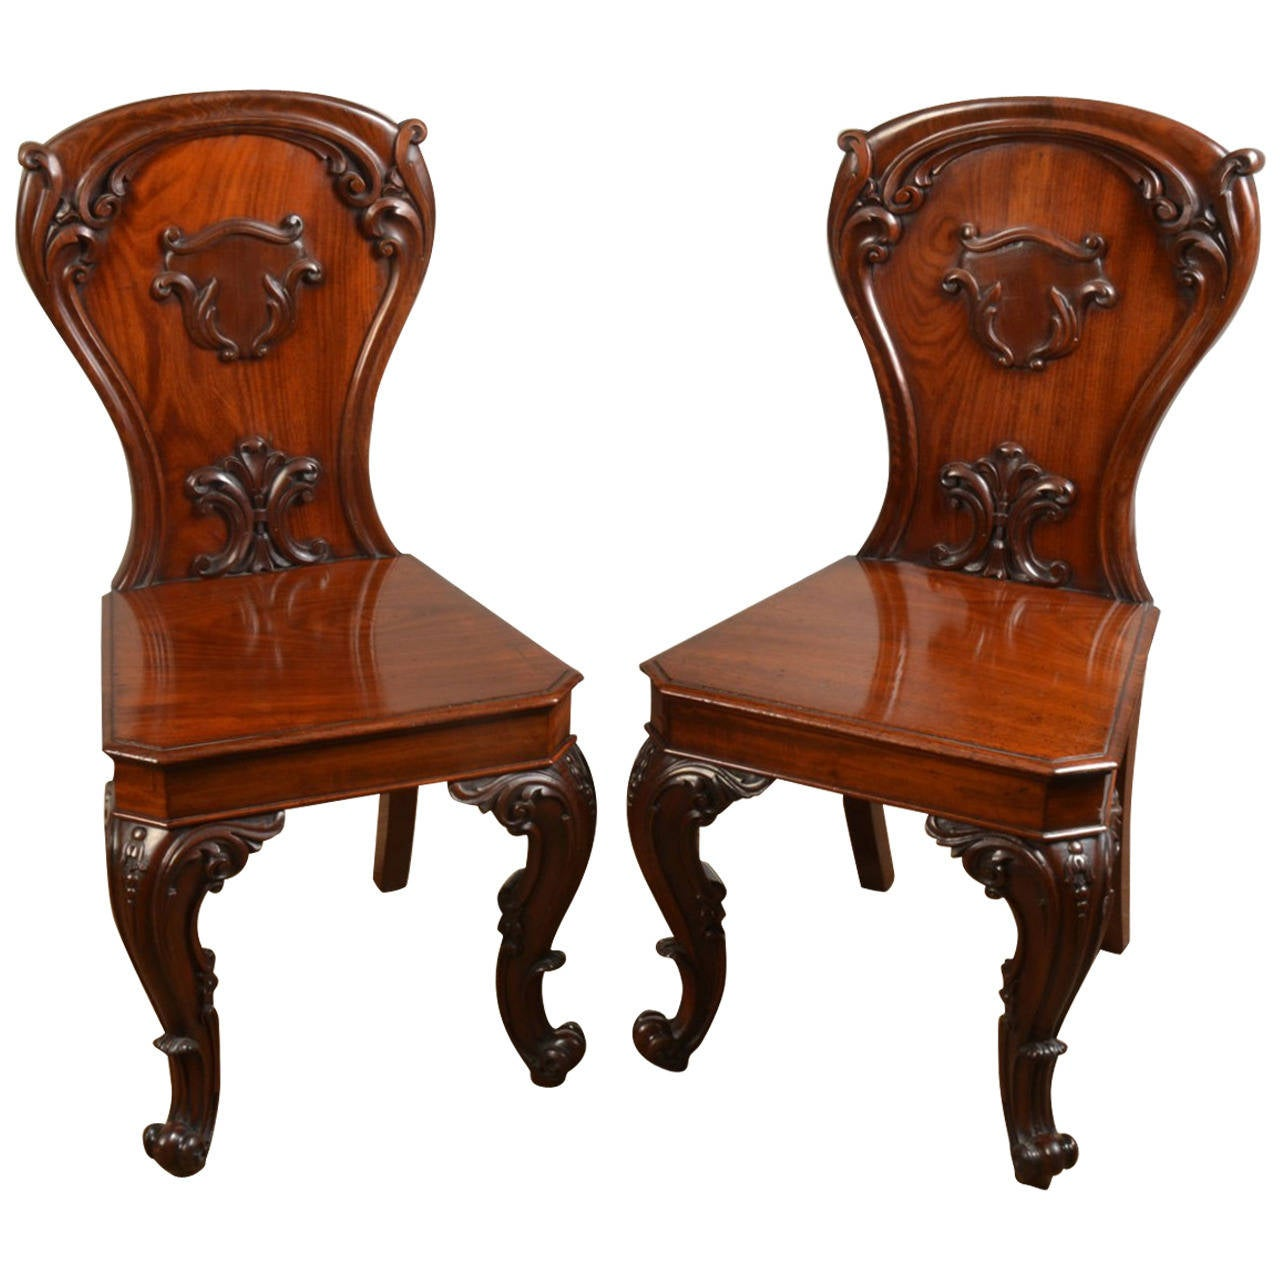 Pair of Victorian Mahogany Hall Chairs 1